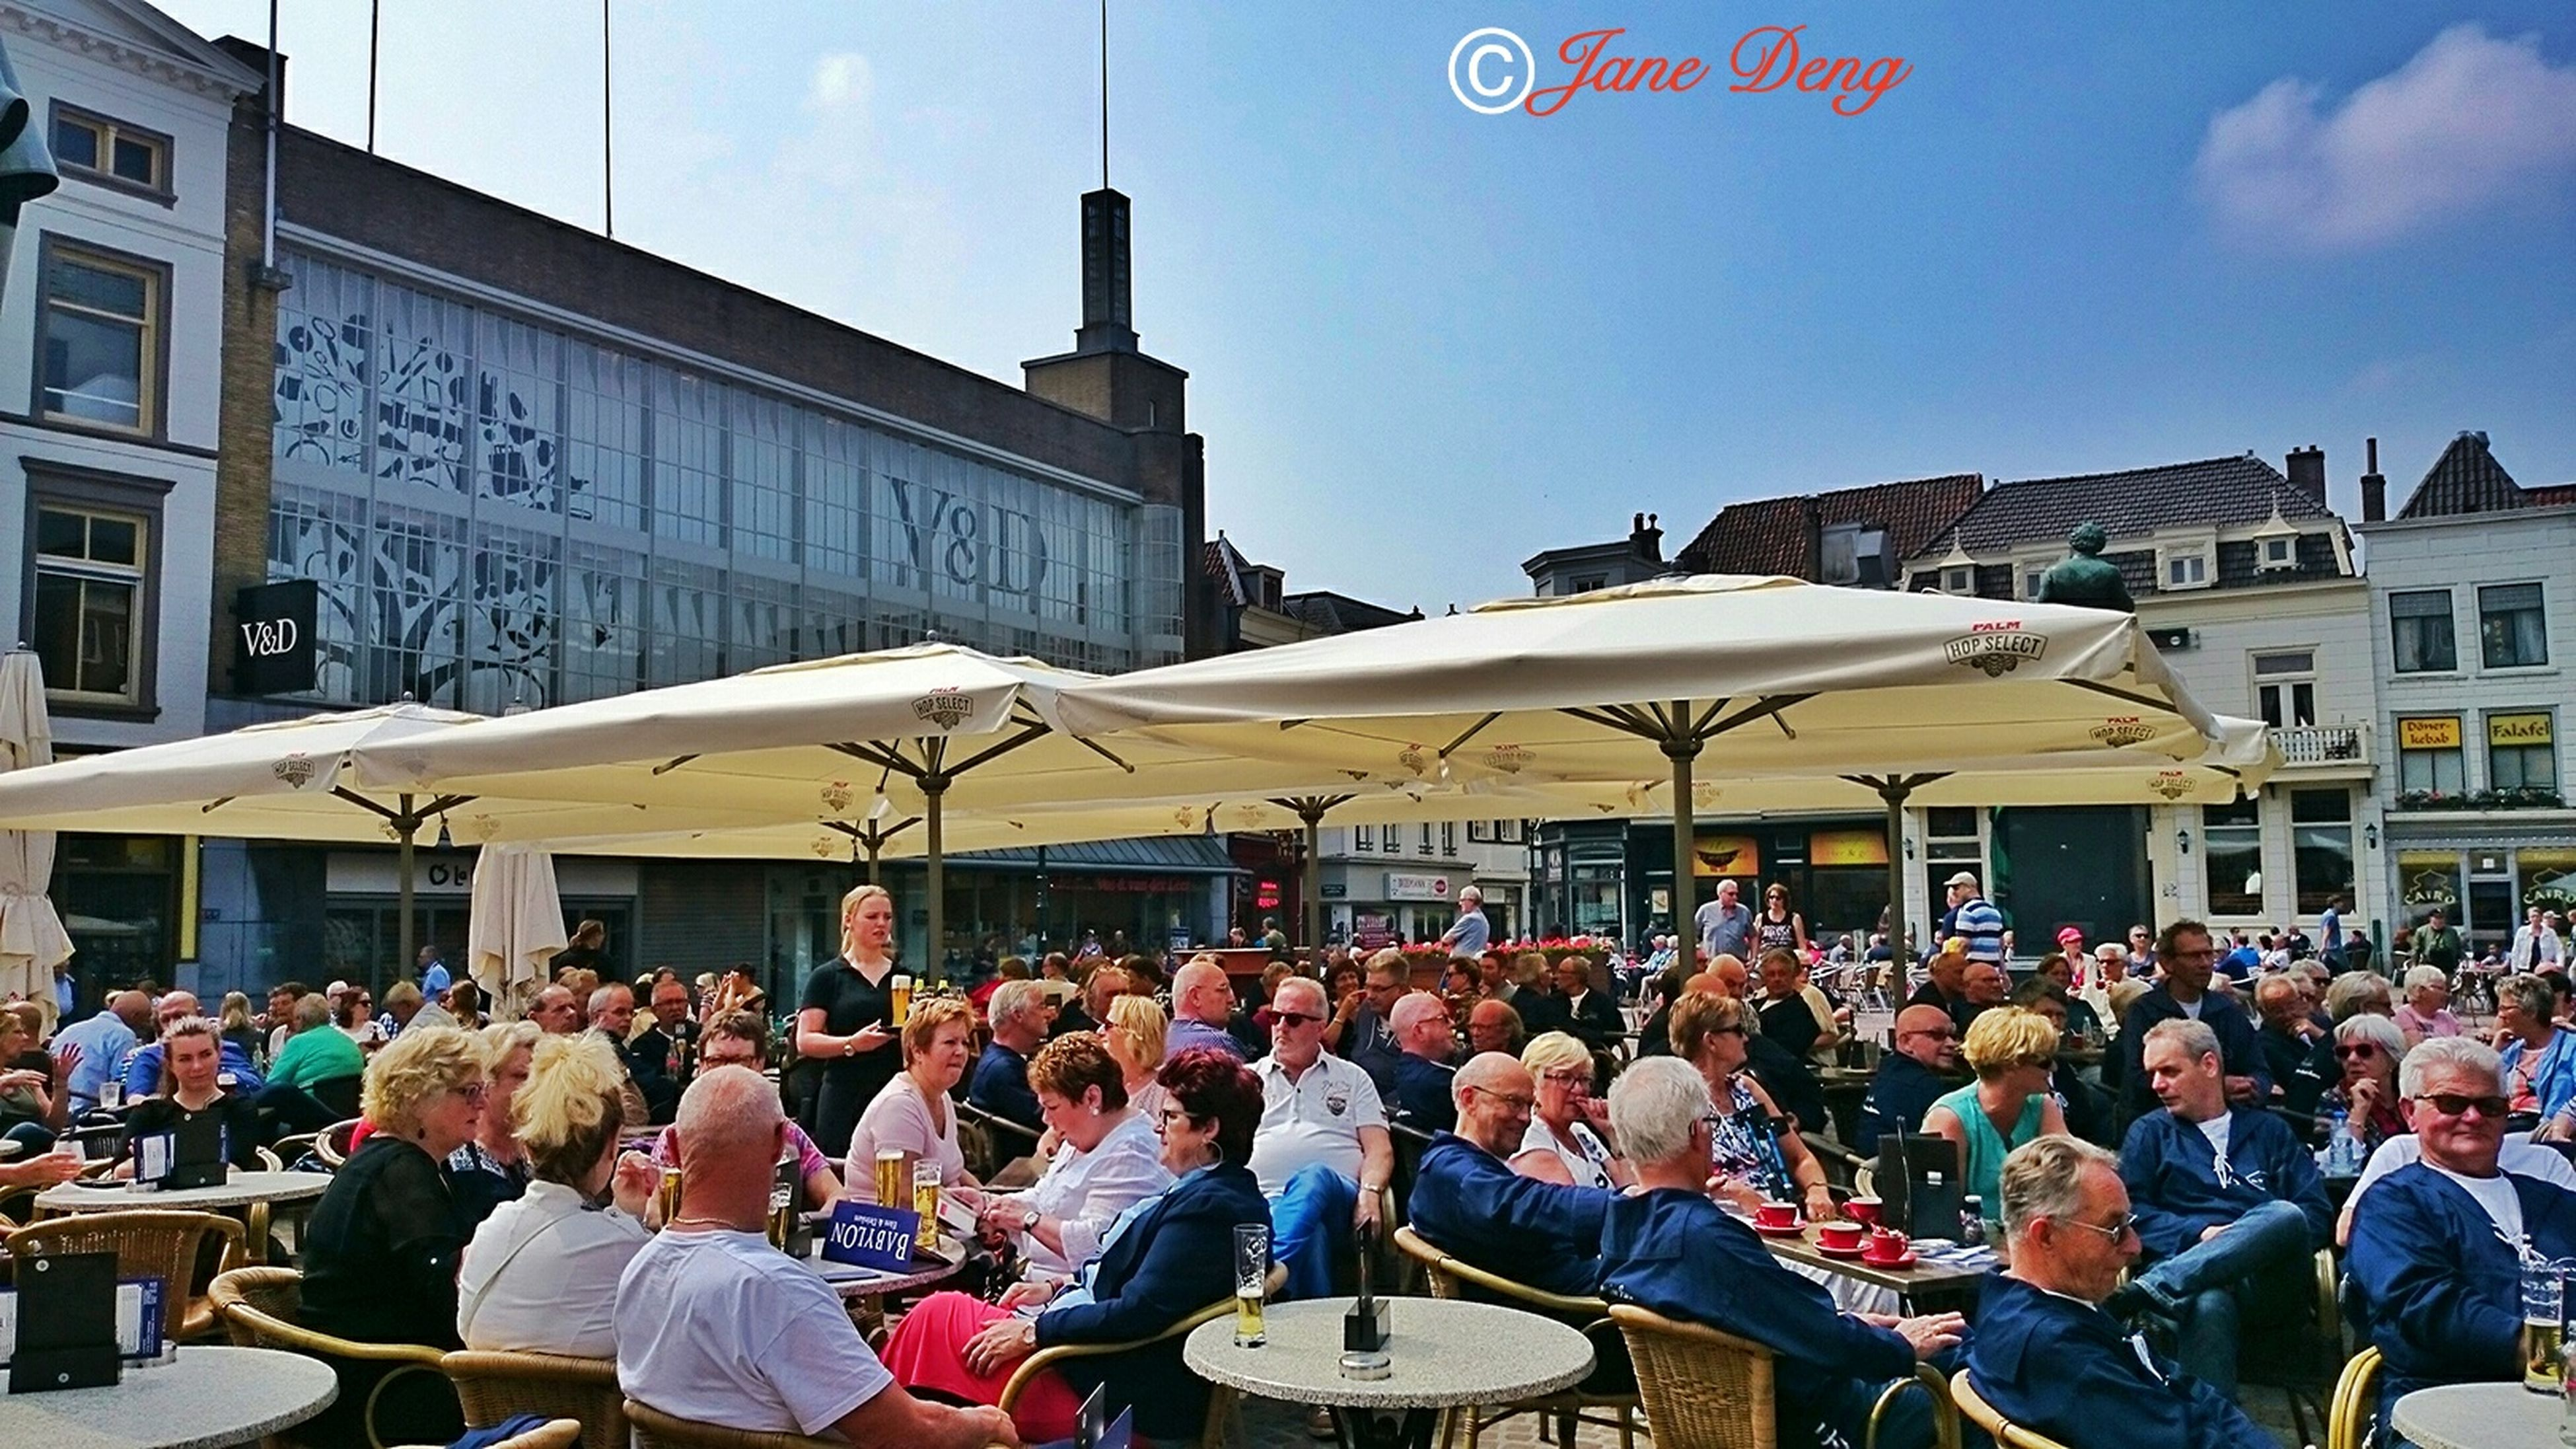 large group of people, building exterior, architecture, crowd, person, built structure, men, lifestyles, leisure activity, city, street, mixed age range, city life, sky, market, walking, day, outdoors, crowded